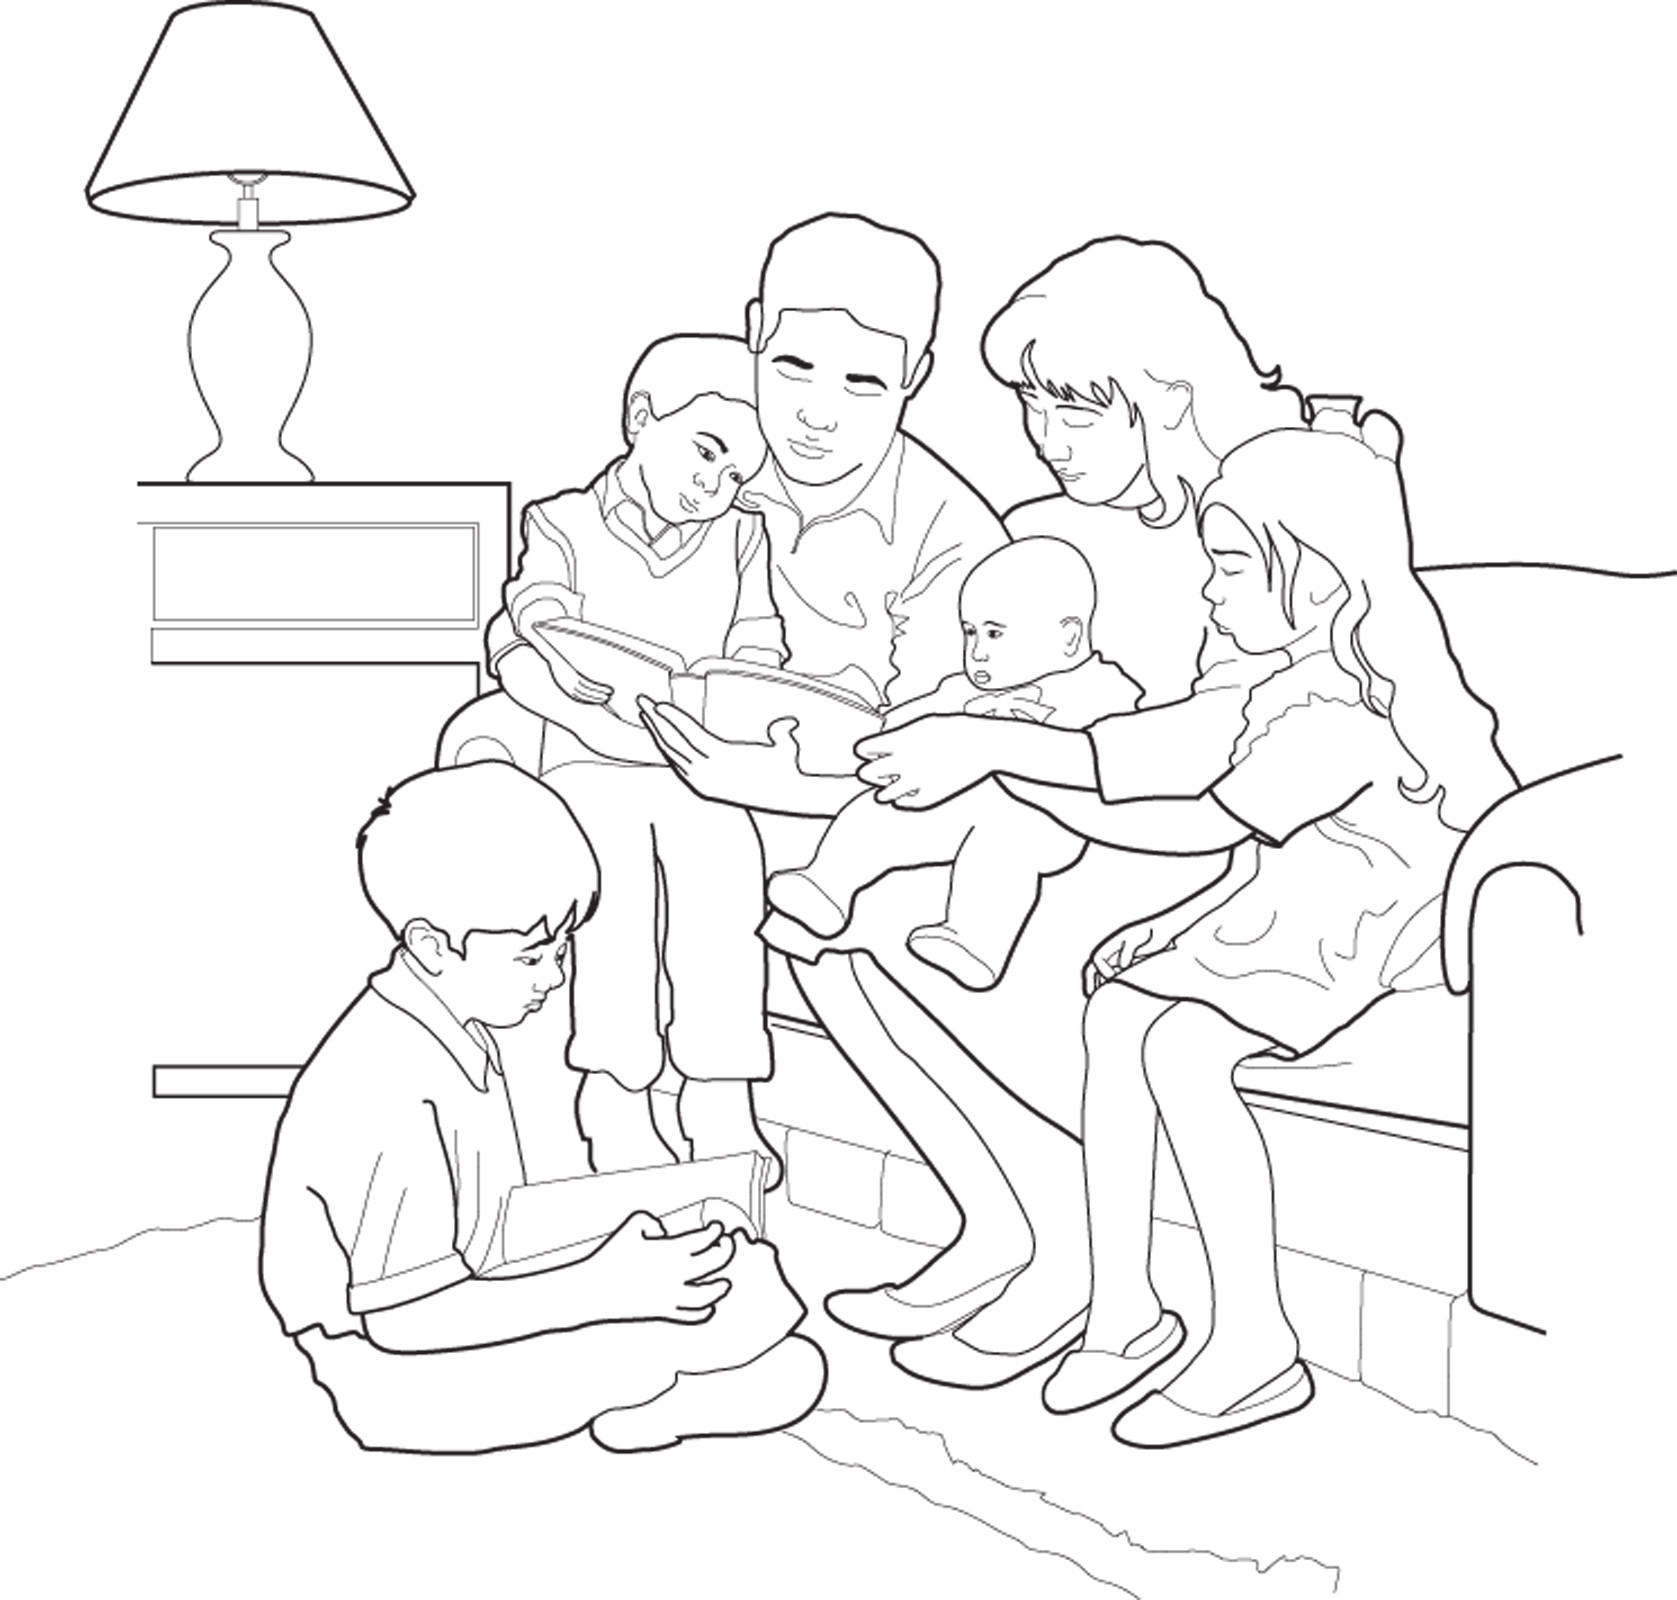 Baptism Coloring Pages Elegant Coloring Pages Puppies Coloring Pages to Print Of Coloring Pages Thanksgiving Turkey Baptism Page Contemporary Style Download